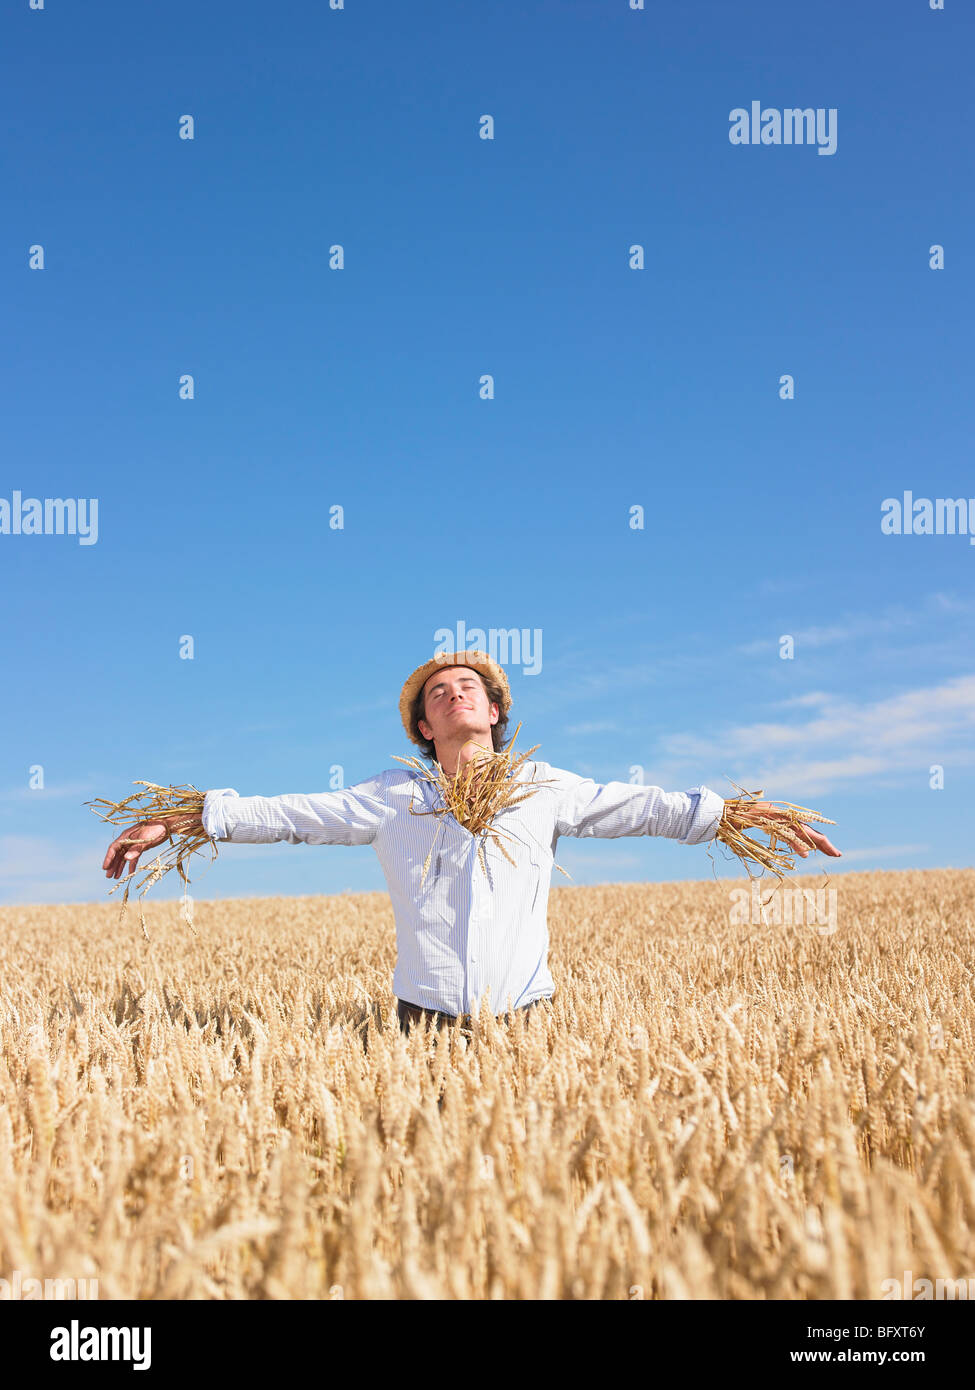 scarecrow in wheat field - Stock Image